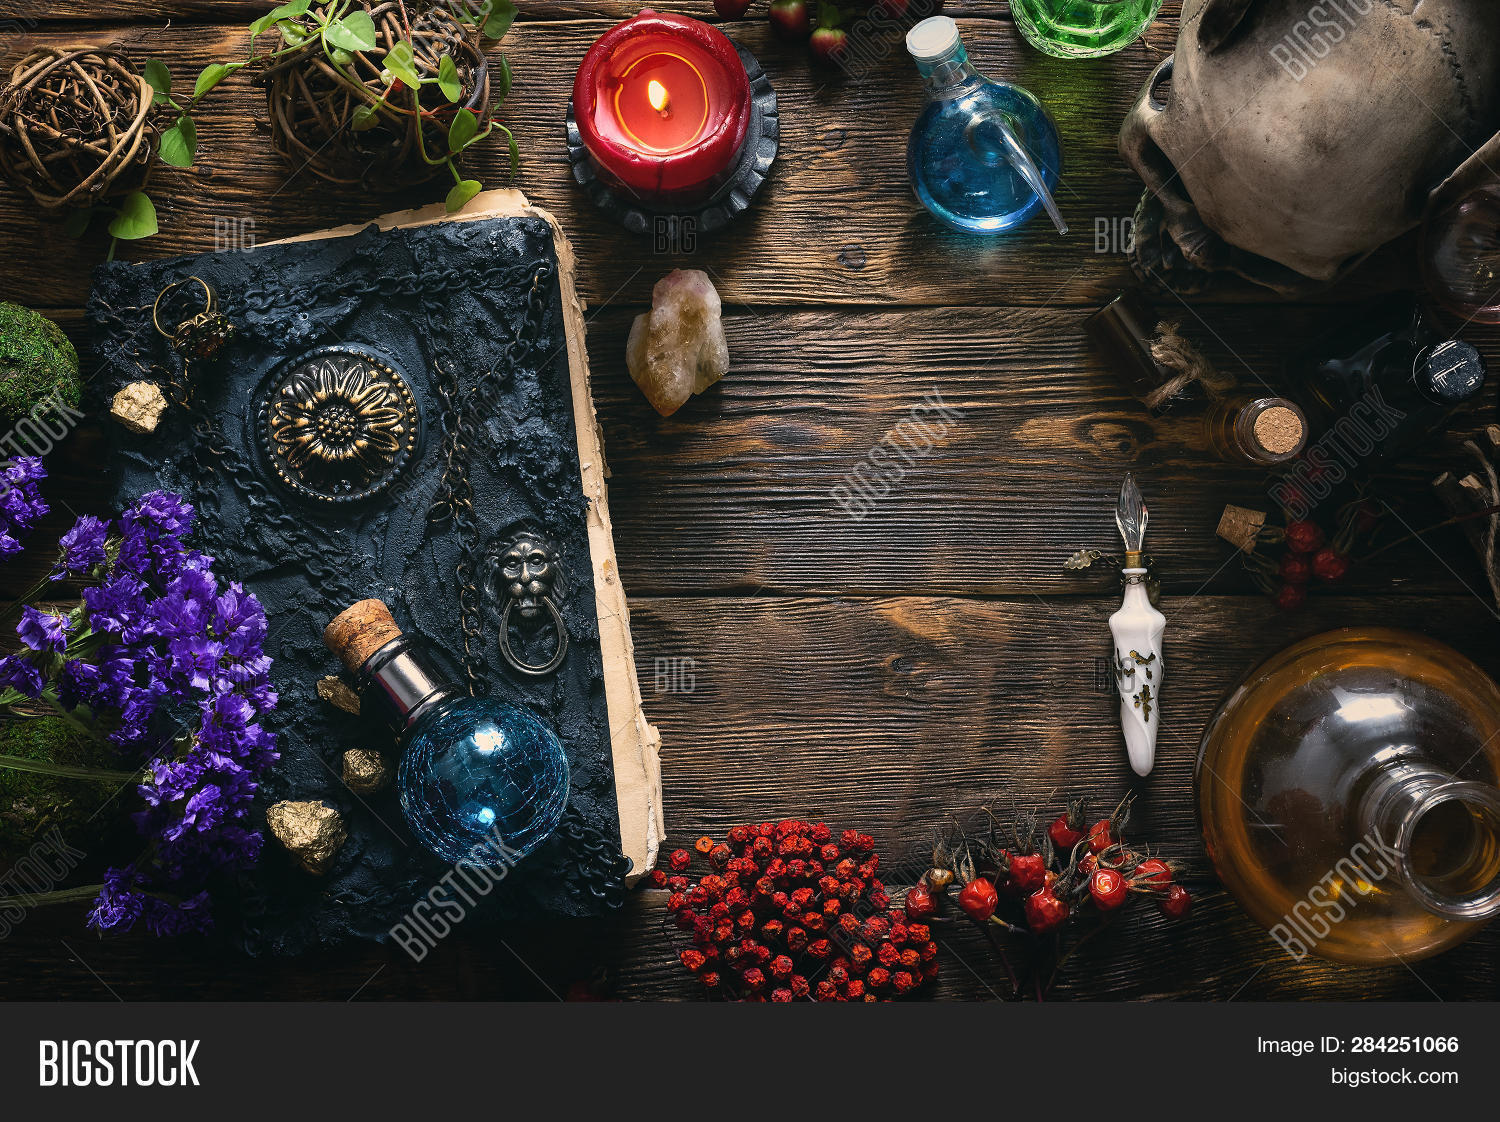 Spell Book, Magic Image & Photo (Free Trial) | Bigstock